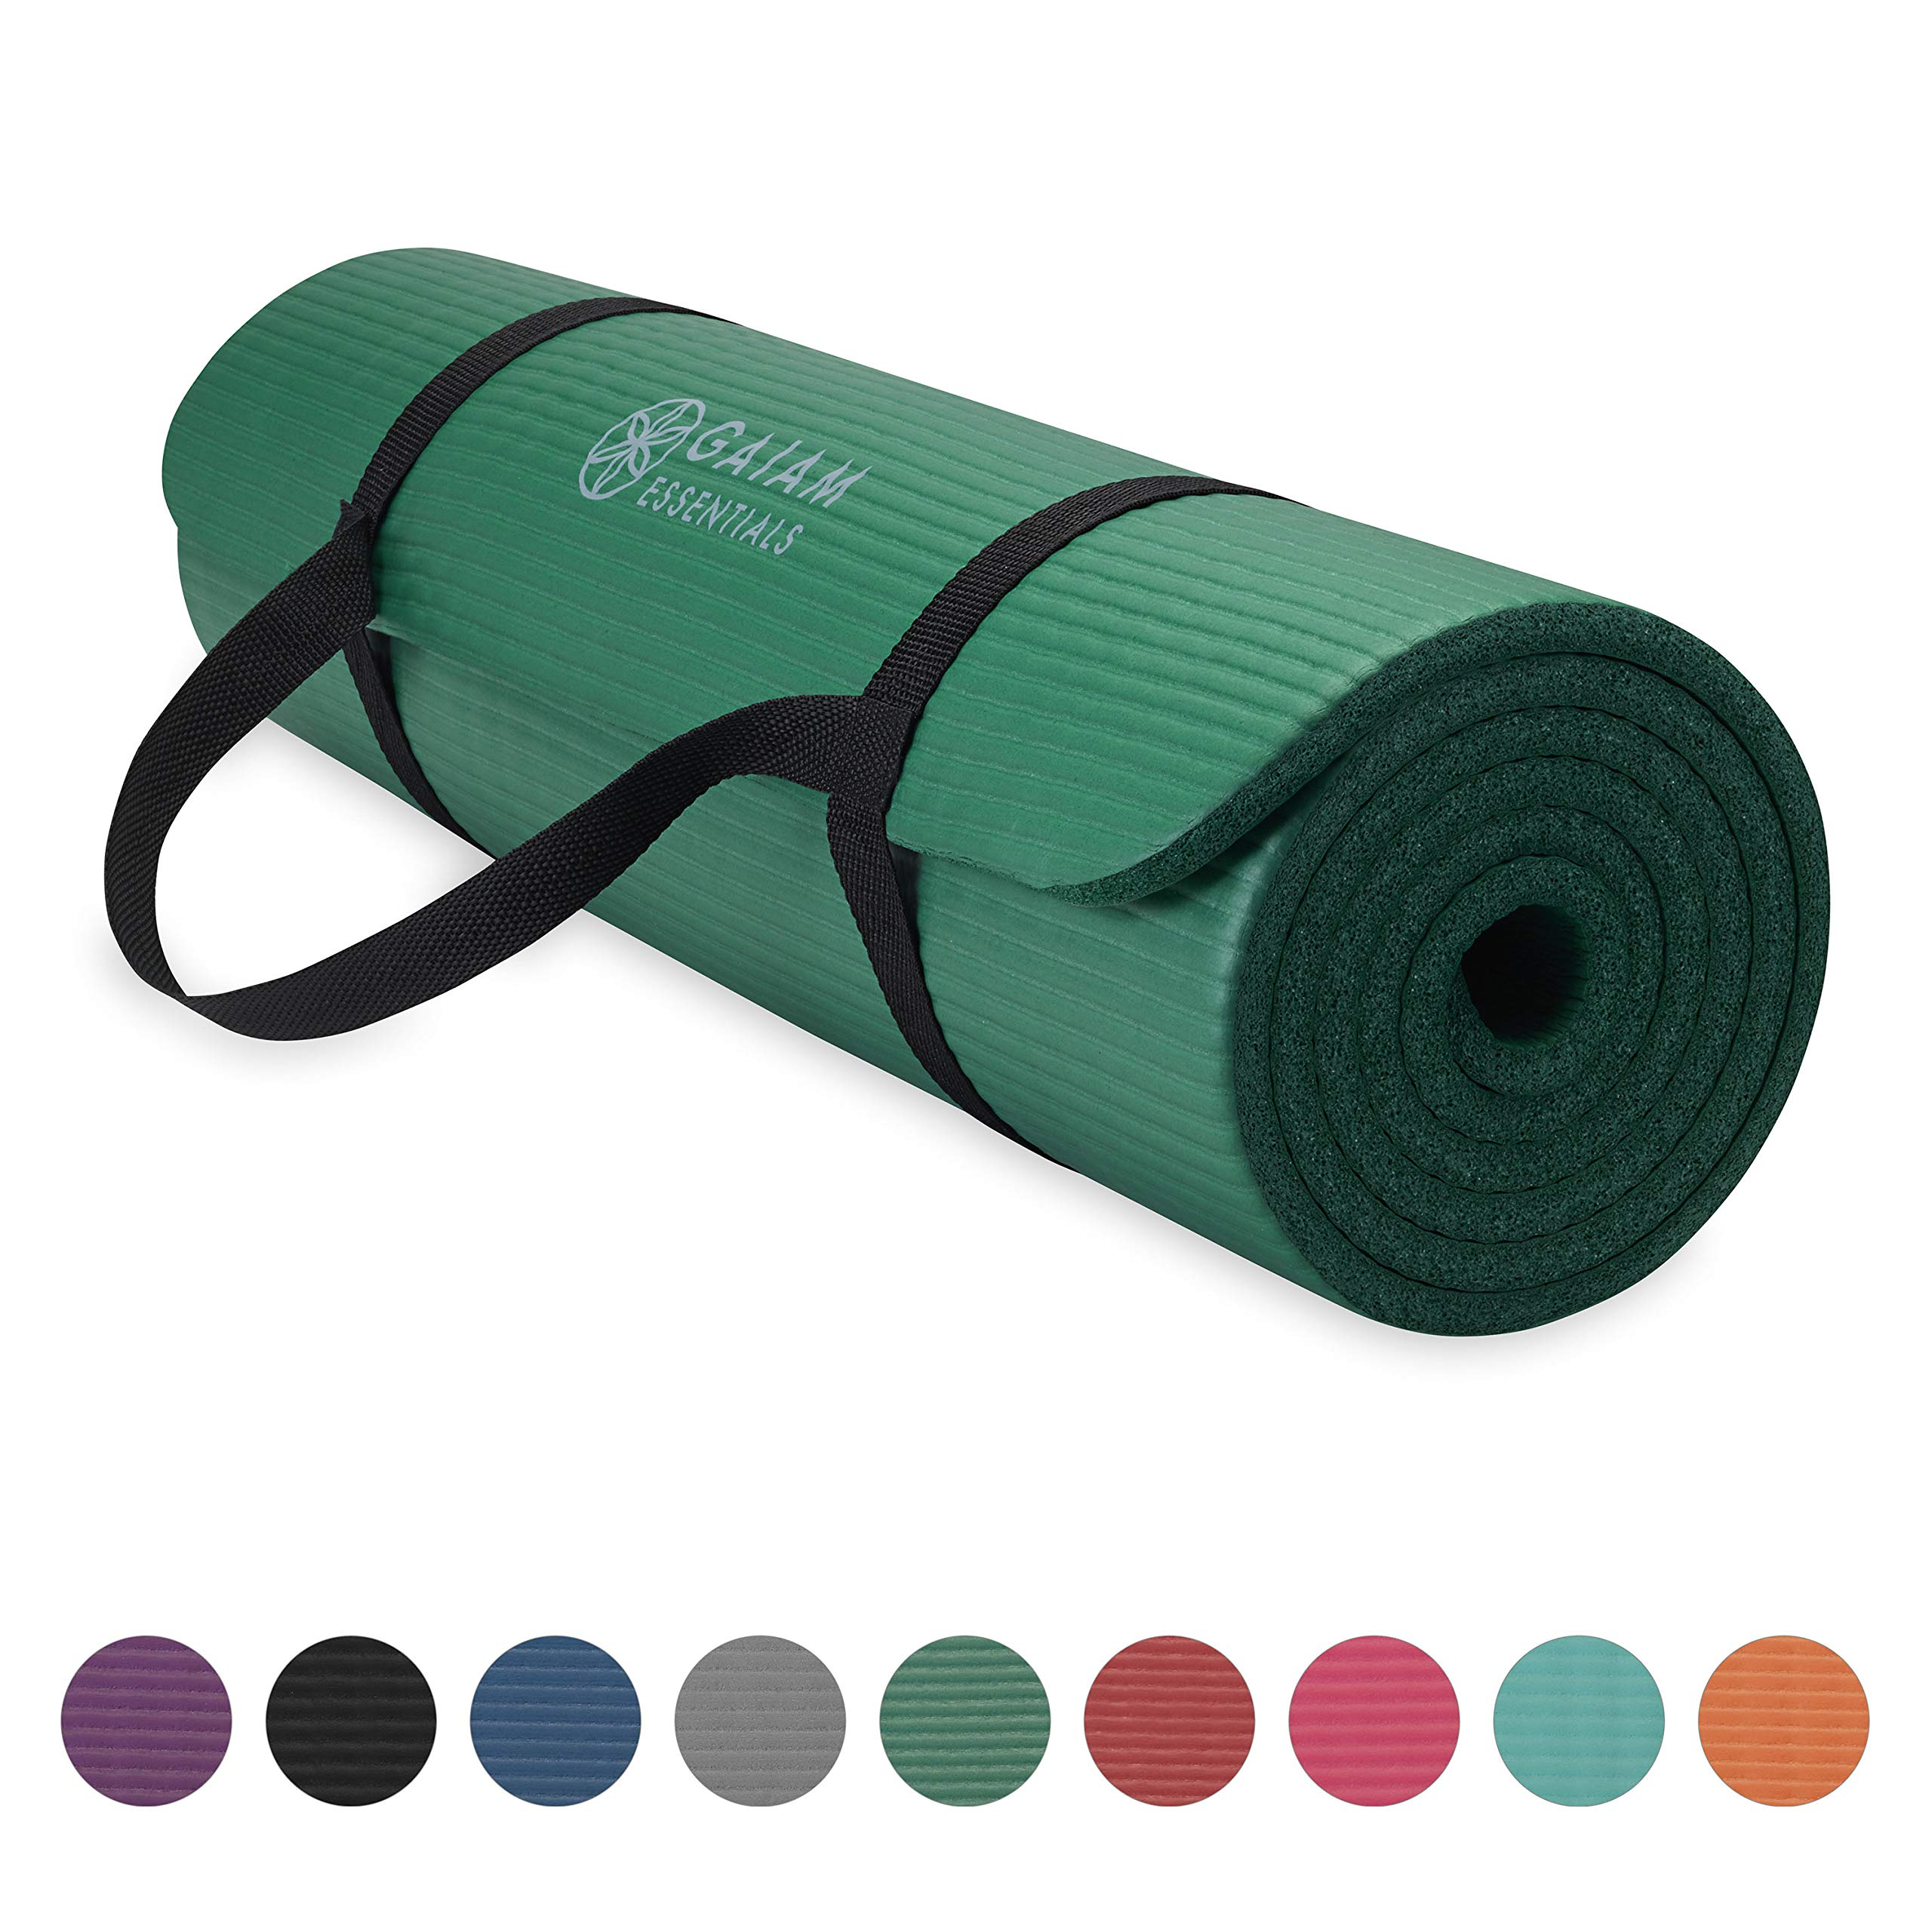 Gaiam Essentials Thick Yoga Mat Fitness & Exercise Mat with Easy-Cinch Yoga Mat Carrier Strap, Green, 72''L x 24''W x 2/5 Inch Thick